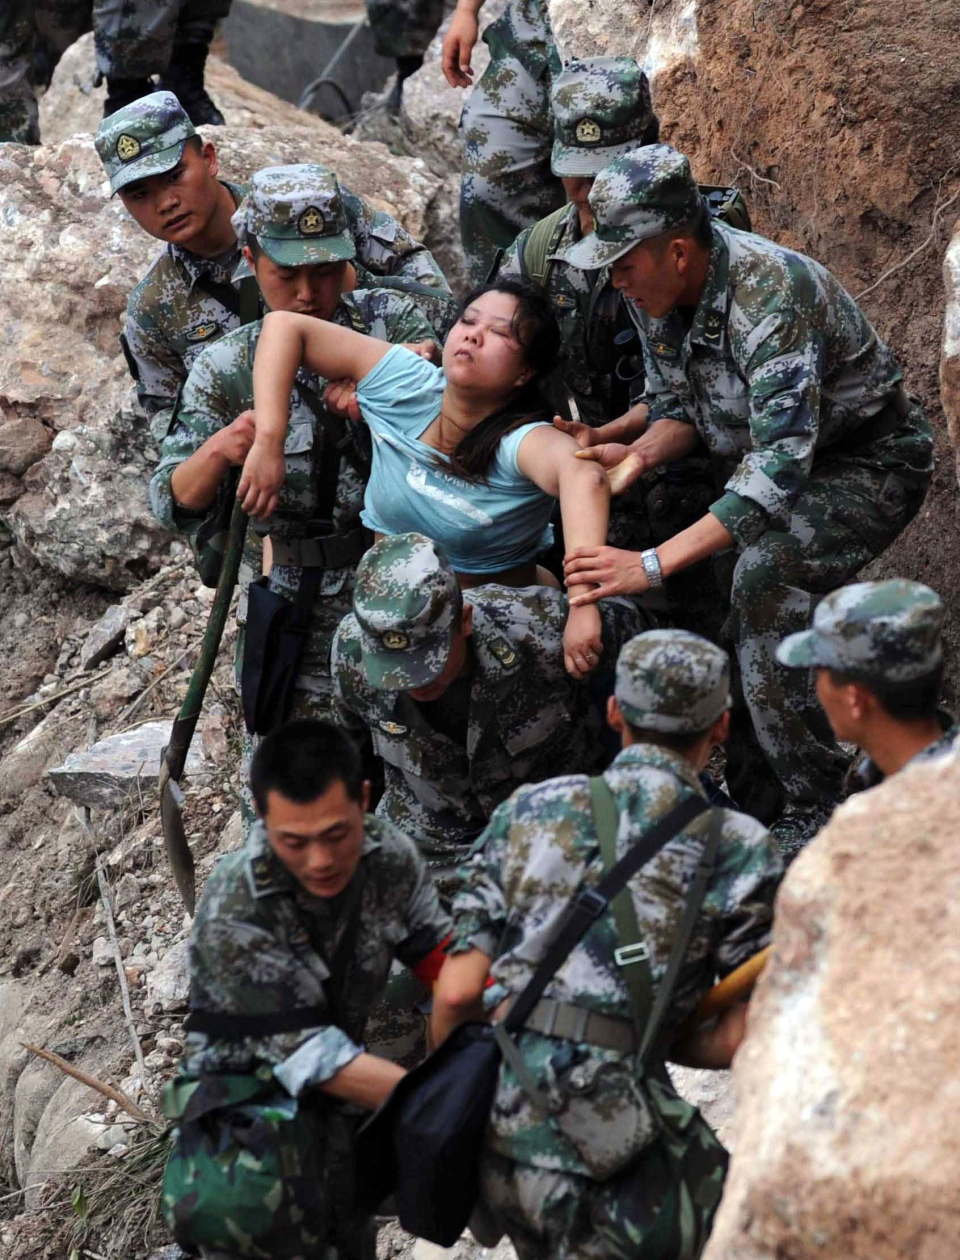 Rescuers save an injured woman after an earthquake hit Baosheng Township in Lushan County, Ya'an City, southwest China's Sichuan Province, Saturday, April 20, 2013. (Xinhua, Jiang Hongjing)